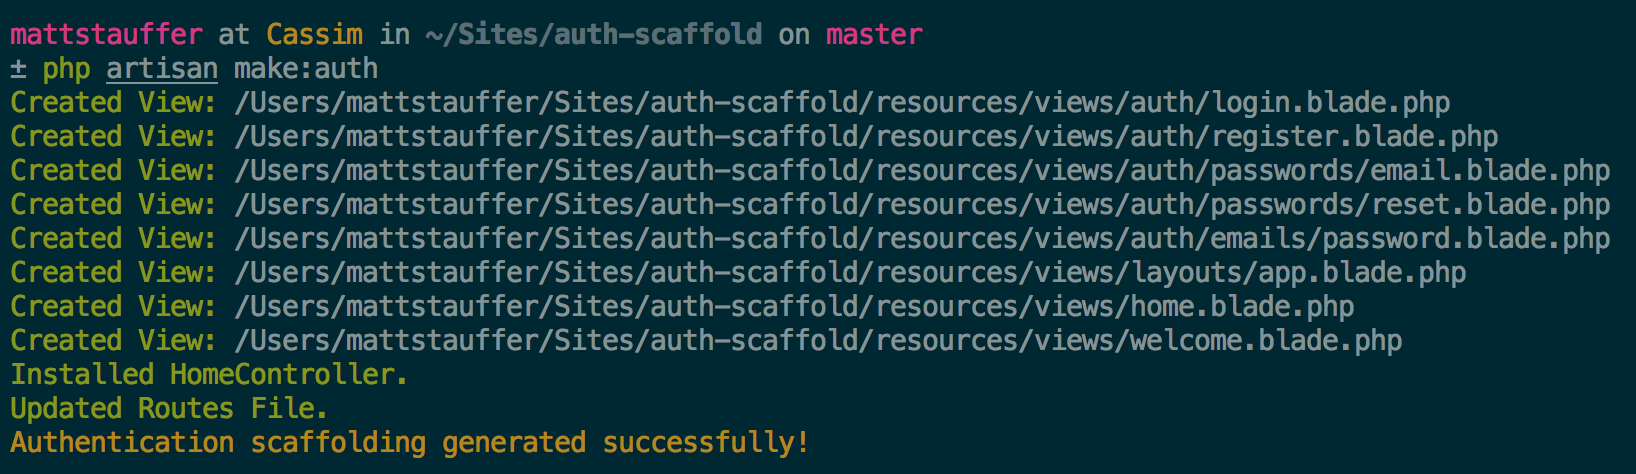 Command line output of artisan make:auth  - auth scaffold command line - The auth scaffold in Laravel 5.2